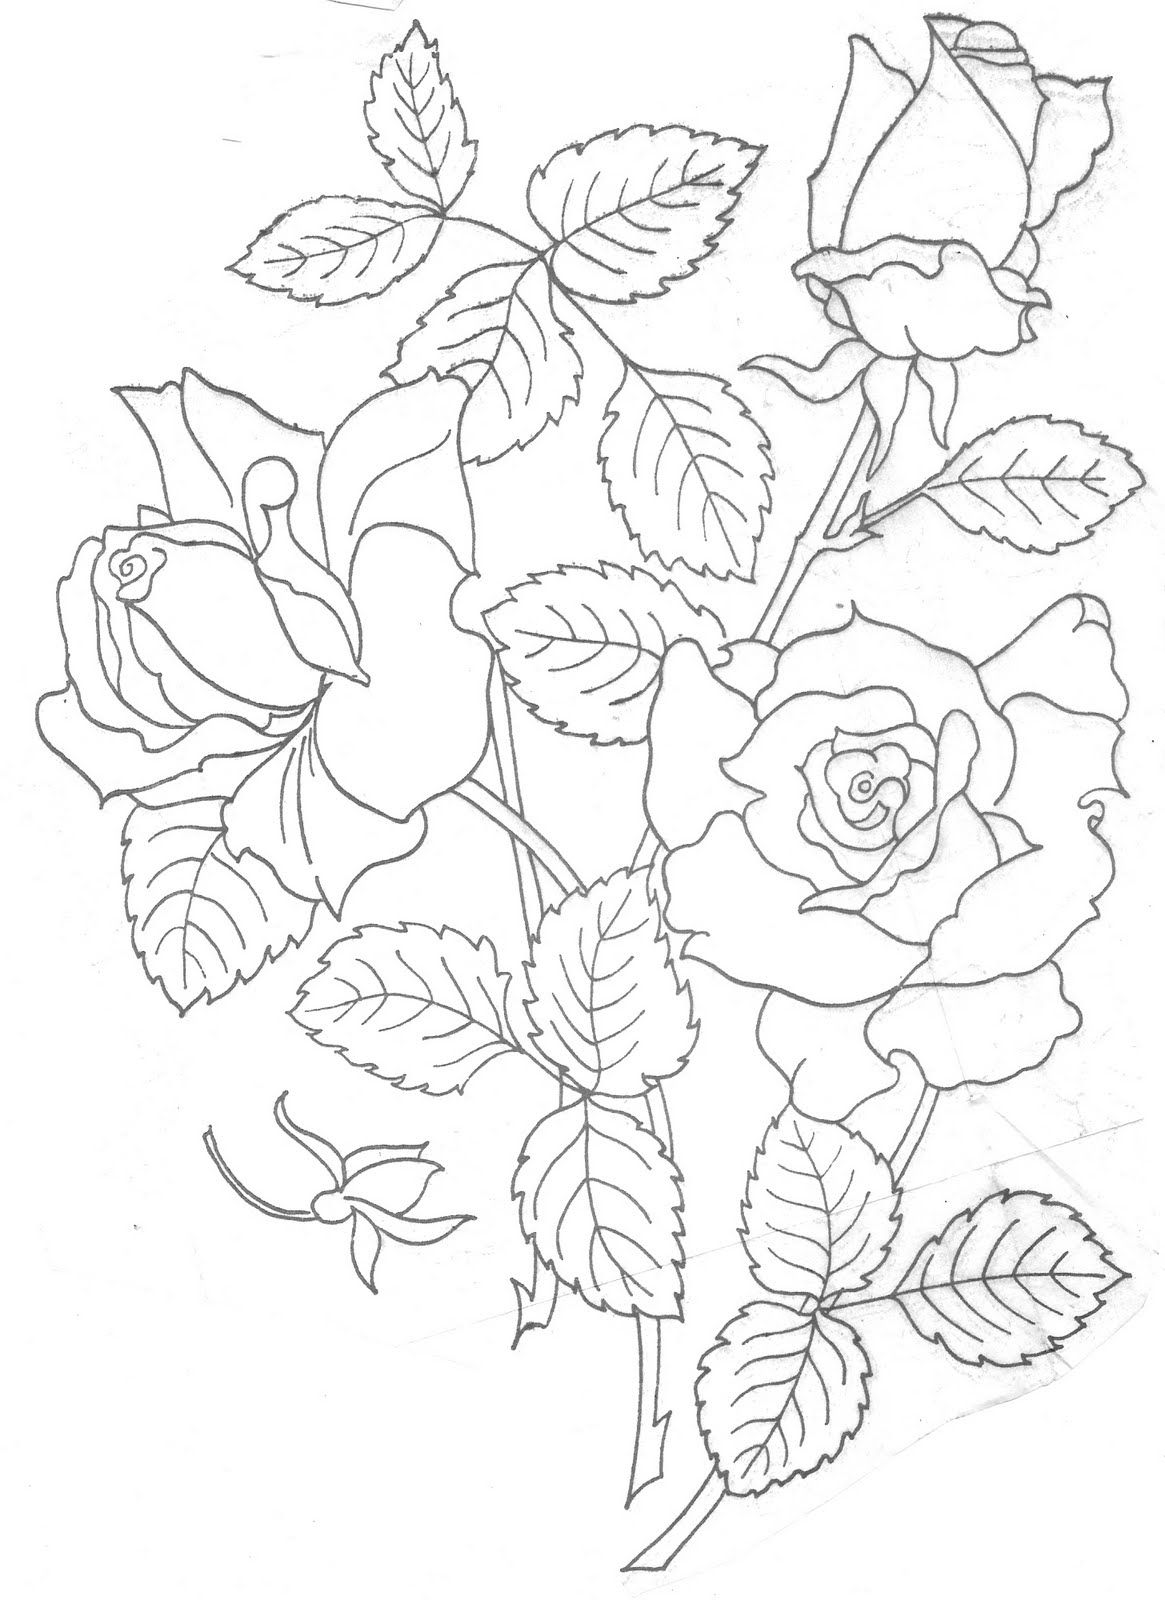 Free Hand Embroidery Flowers Patterns | EMBROIDERY PILLOWCASE PATTERN - EMBROIDERY DESIGNS ...